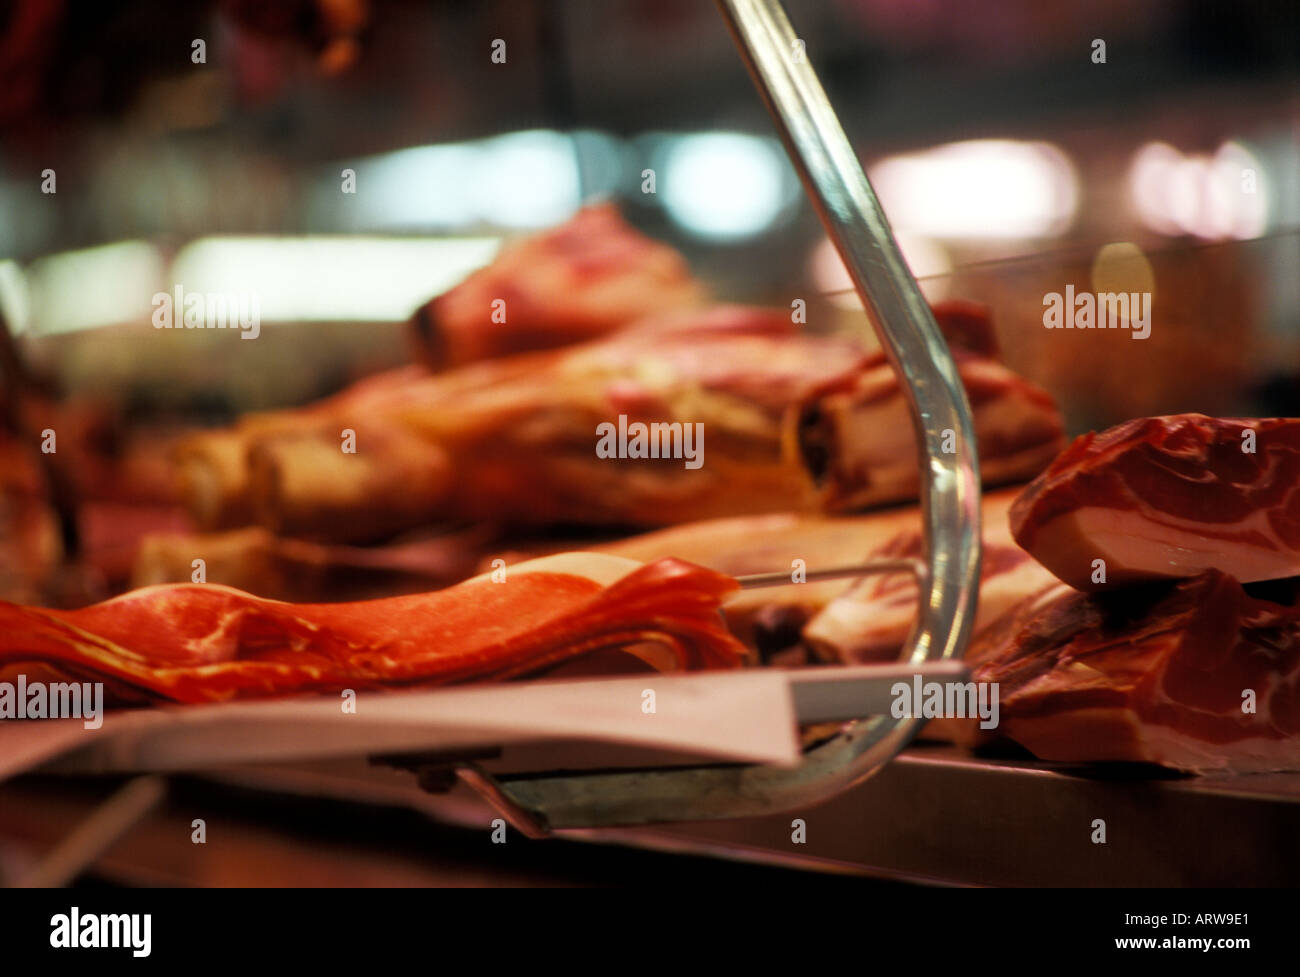 cured meat - Stock Image